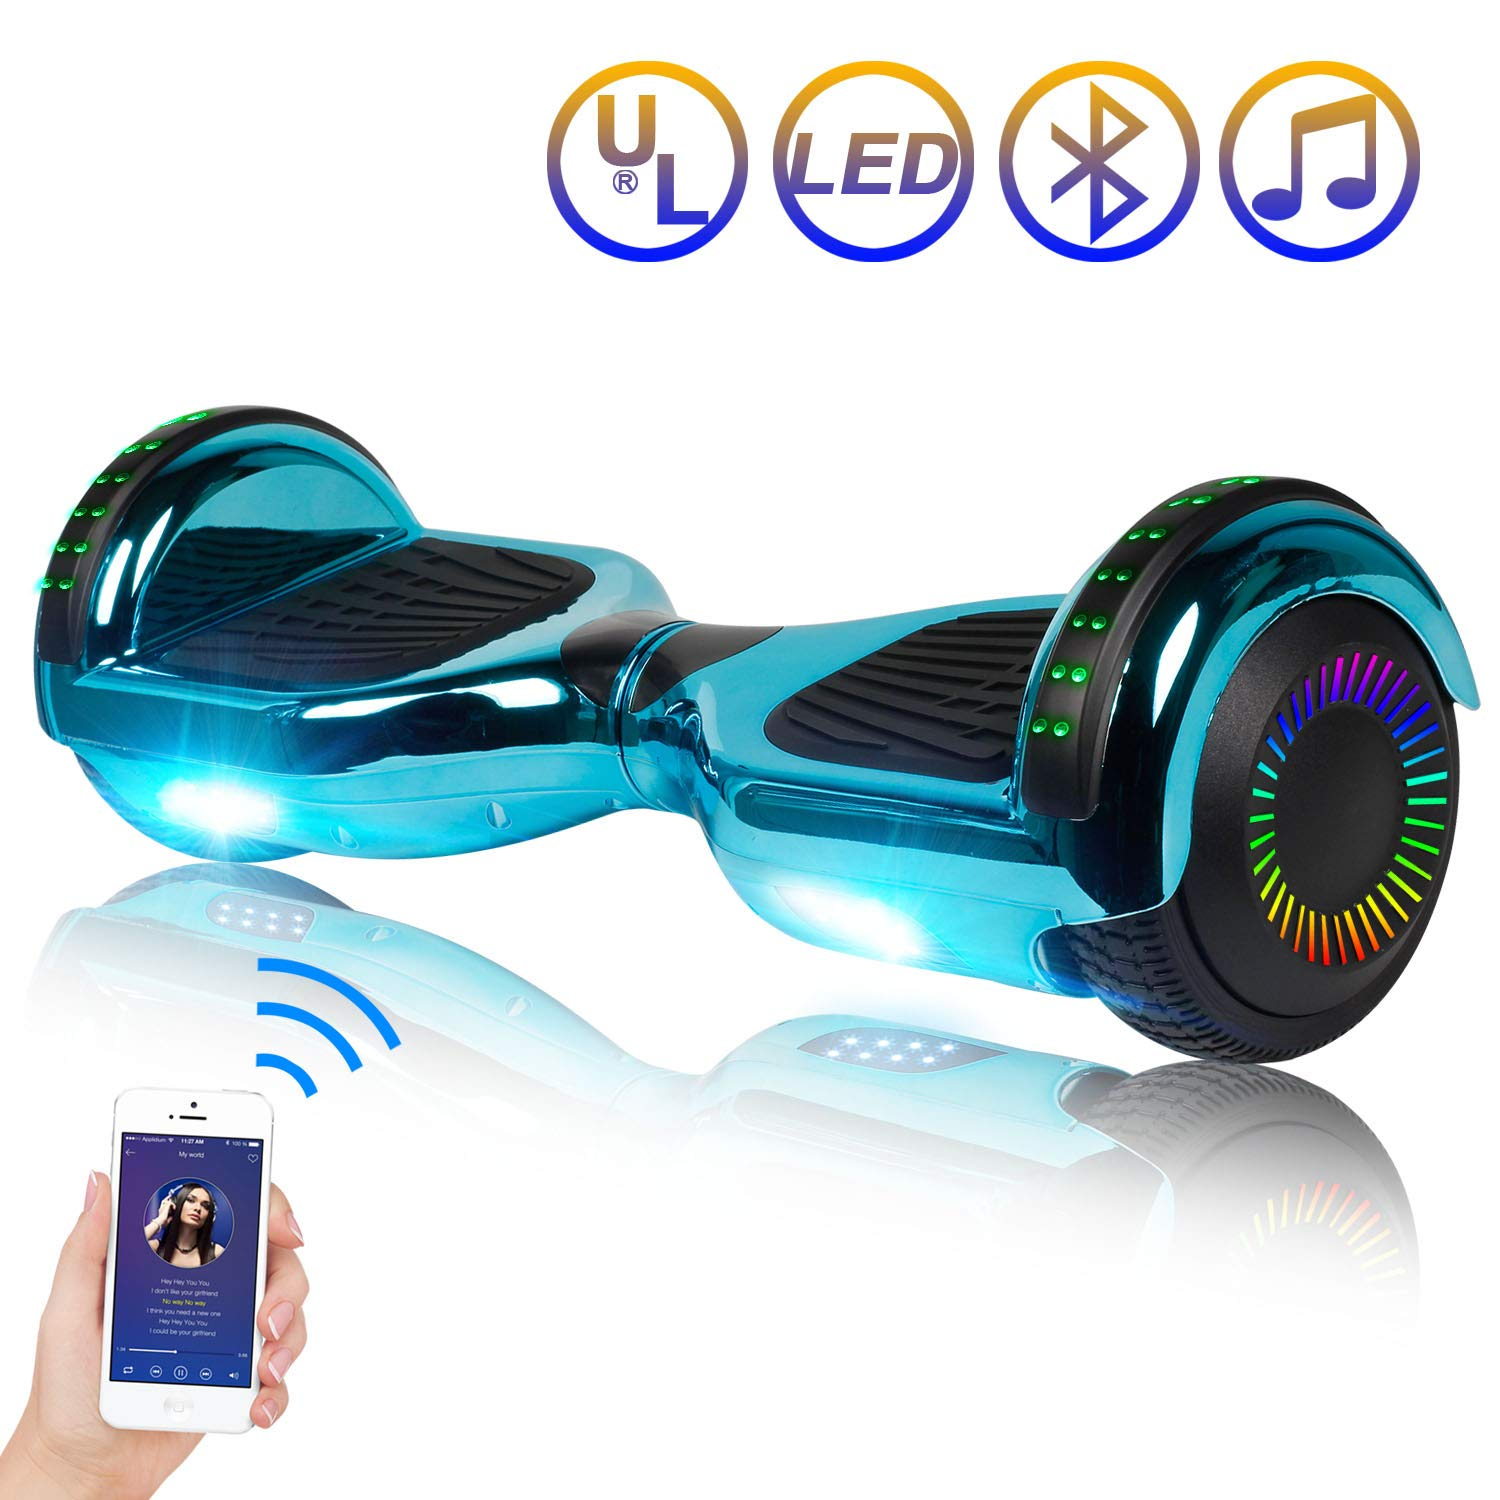 SISIGAD Hoverboard Self Balancing Scooter 6.5 Two-Wheel Self Balancing Hoverboard with Bluetooth Speaker and LED Lights Electric Scooter for Adult Kids Gift UL 2272 Certified – Plating Dazzle Series